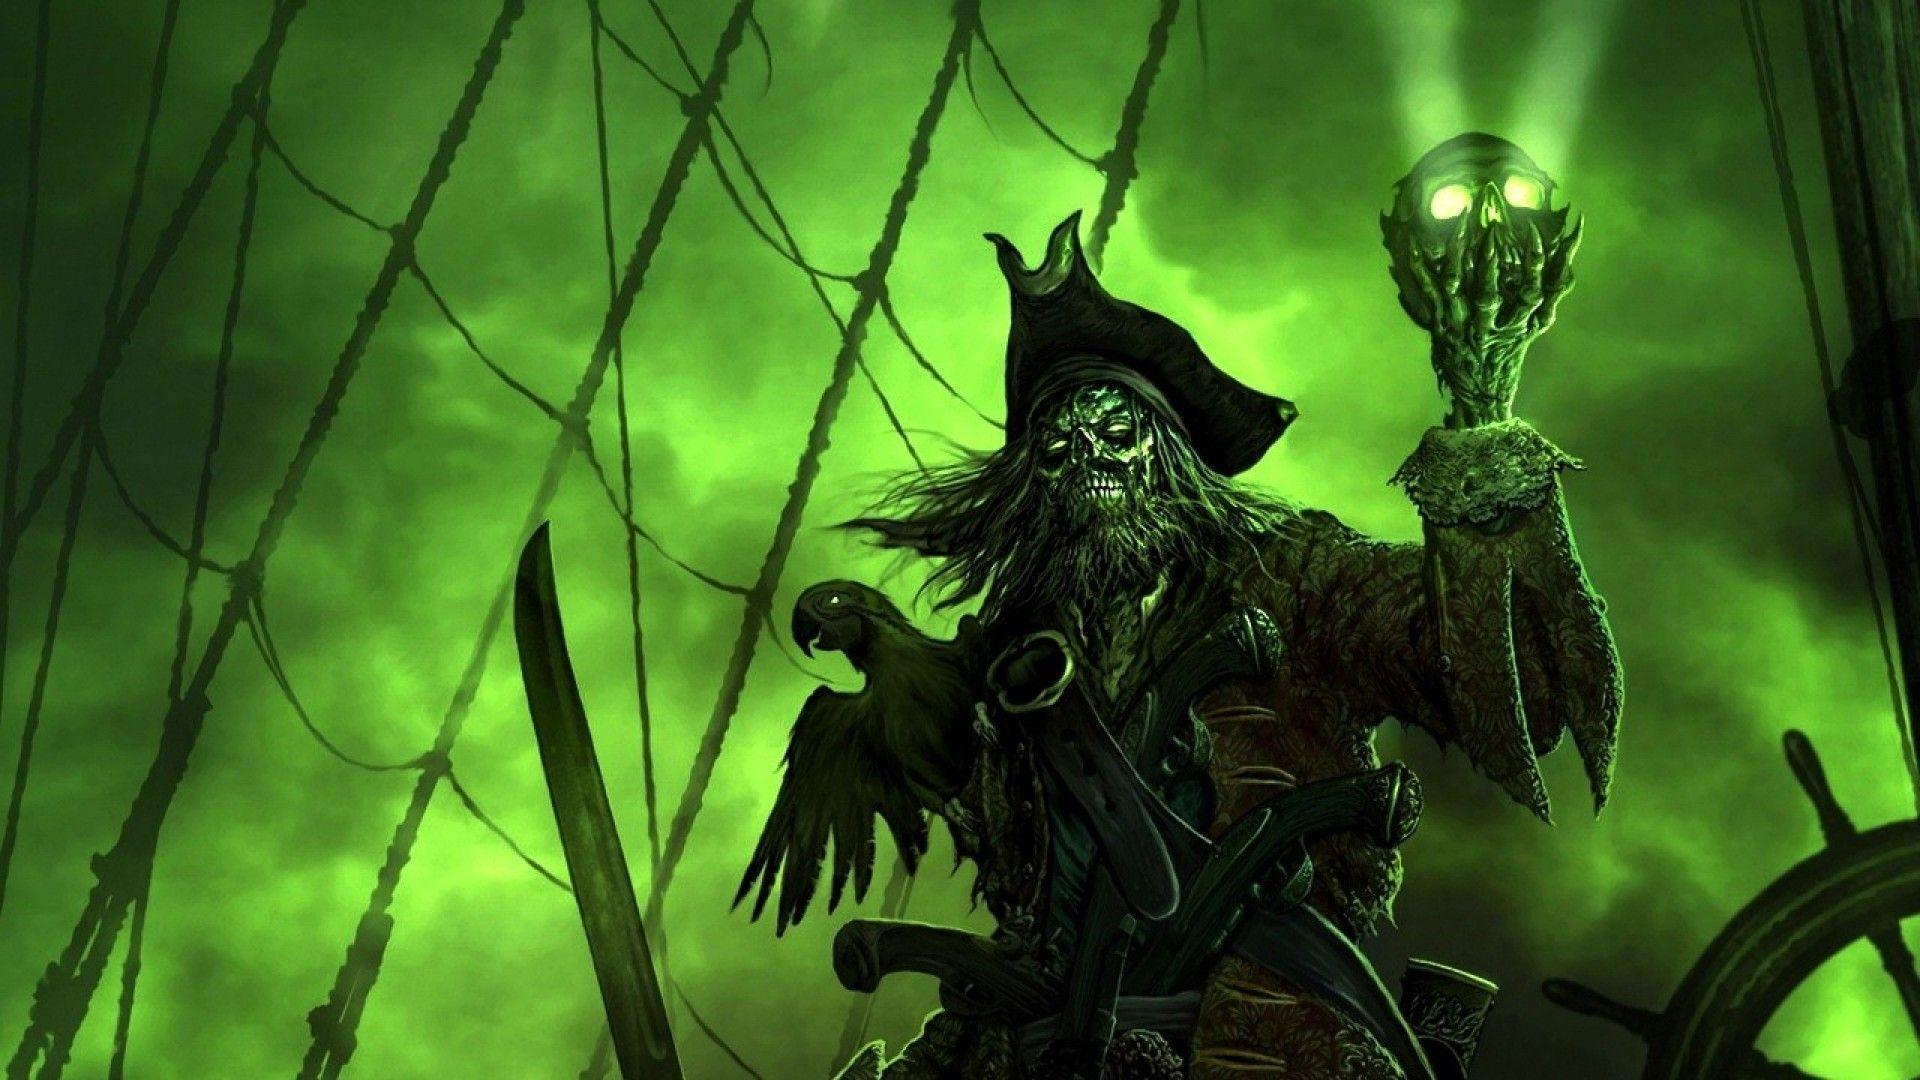 Green Skull Wallpapers 14135 HD Wallpapers